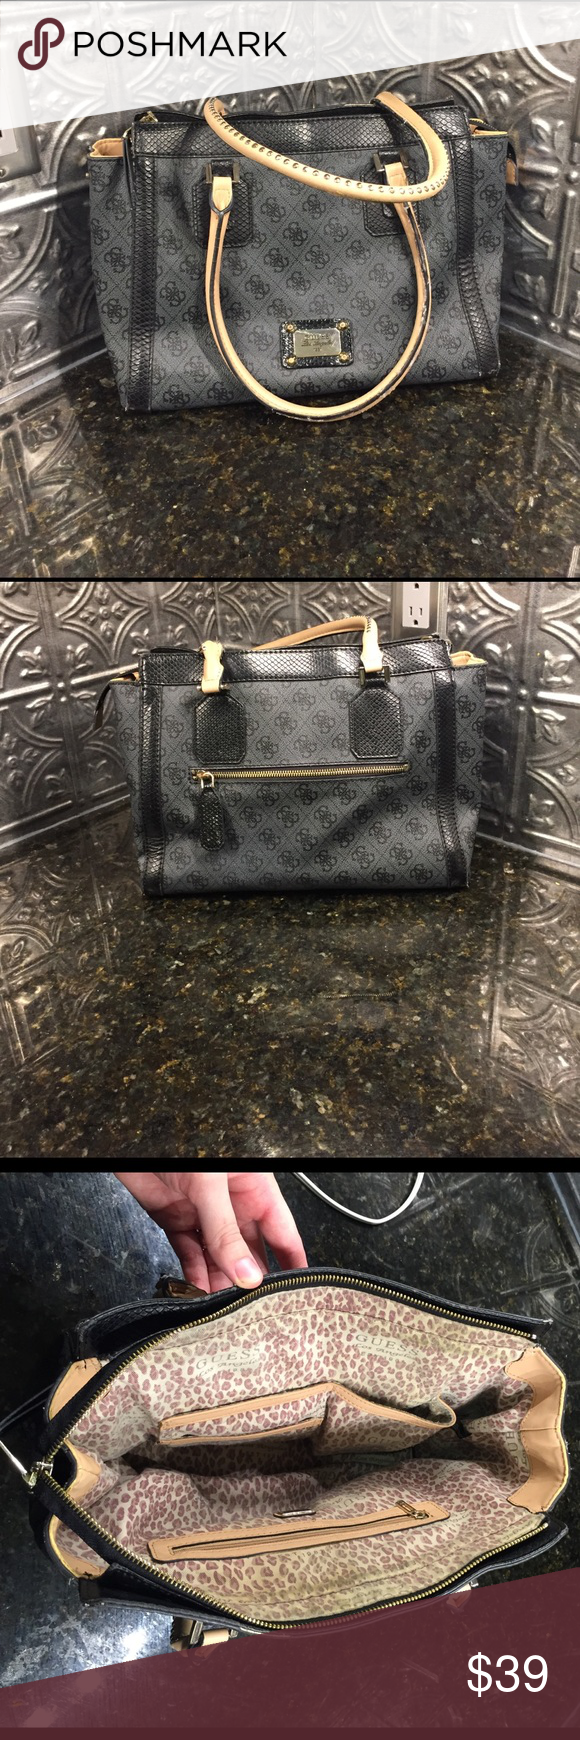 Purse GUESS Los Angeles 1981 Brand New